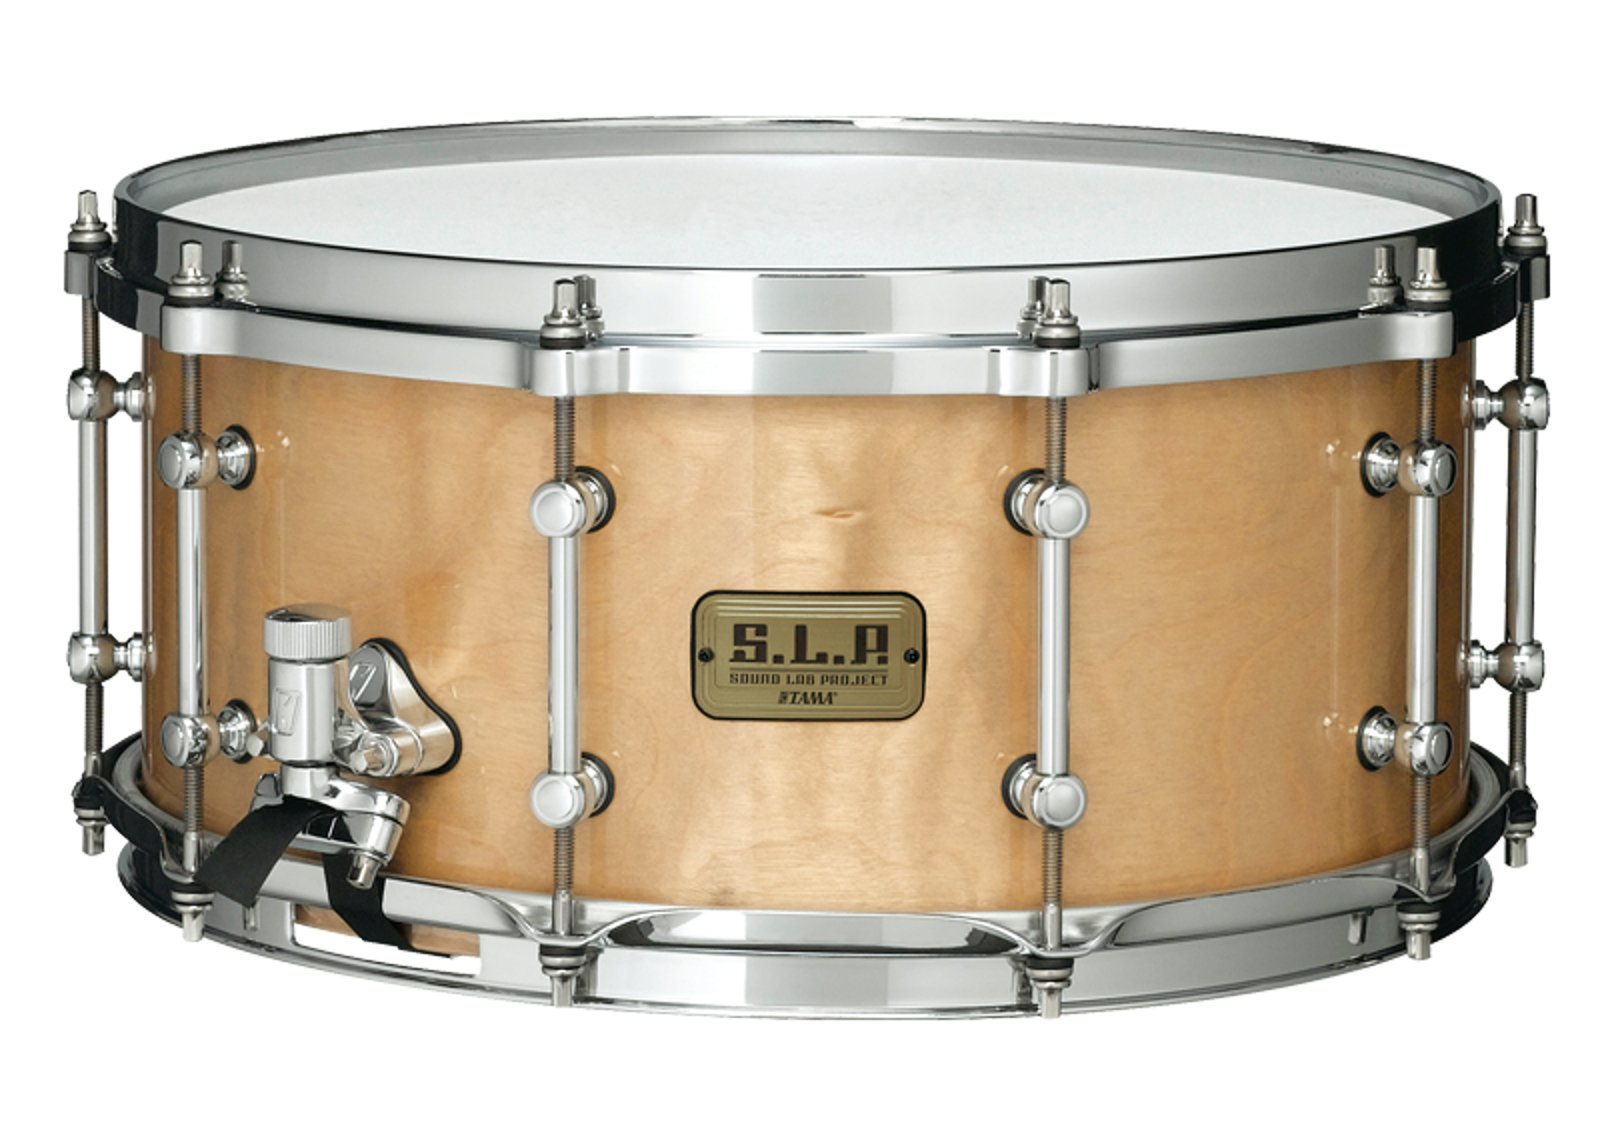 Tama LGFB1465NLB  Sond Lab Project Limited Edition Snare Drum with Natural Birch Finish LGFB1465NLB